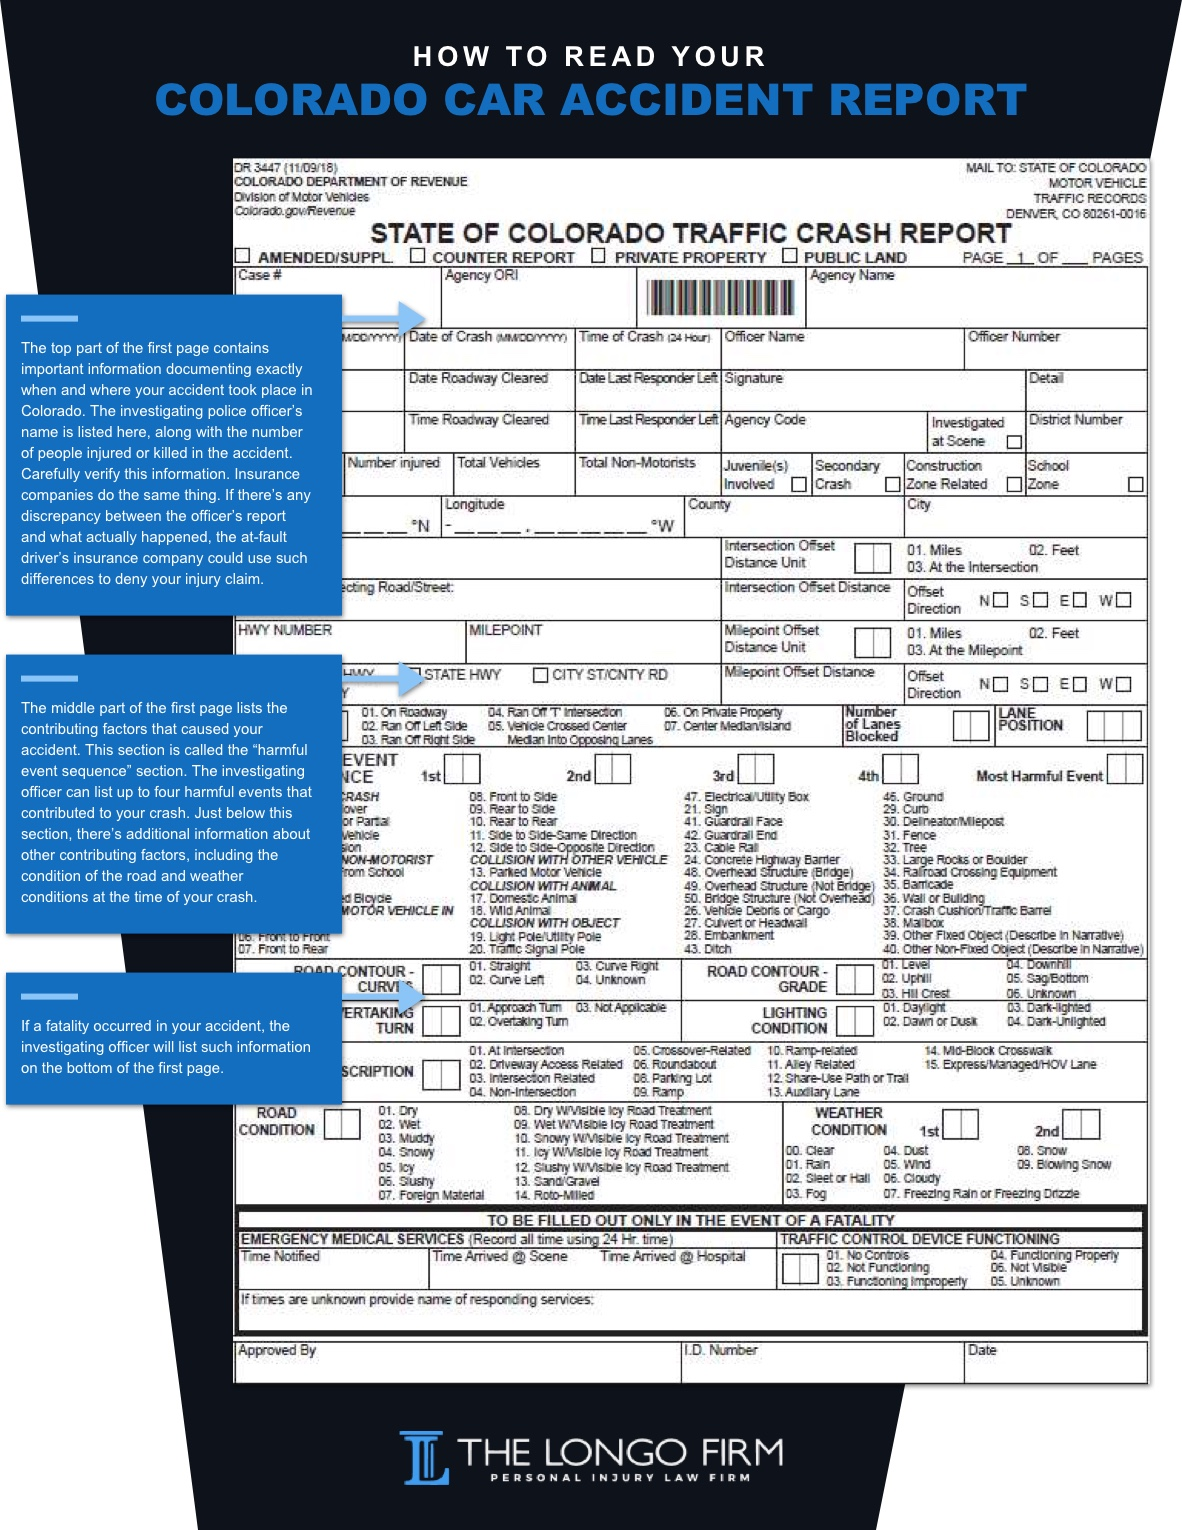 How To Read Your Colorado Accident Report pg. 1